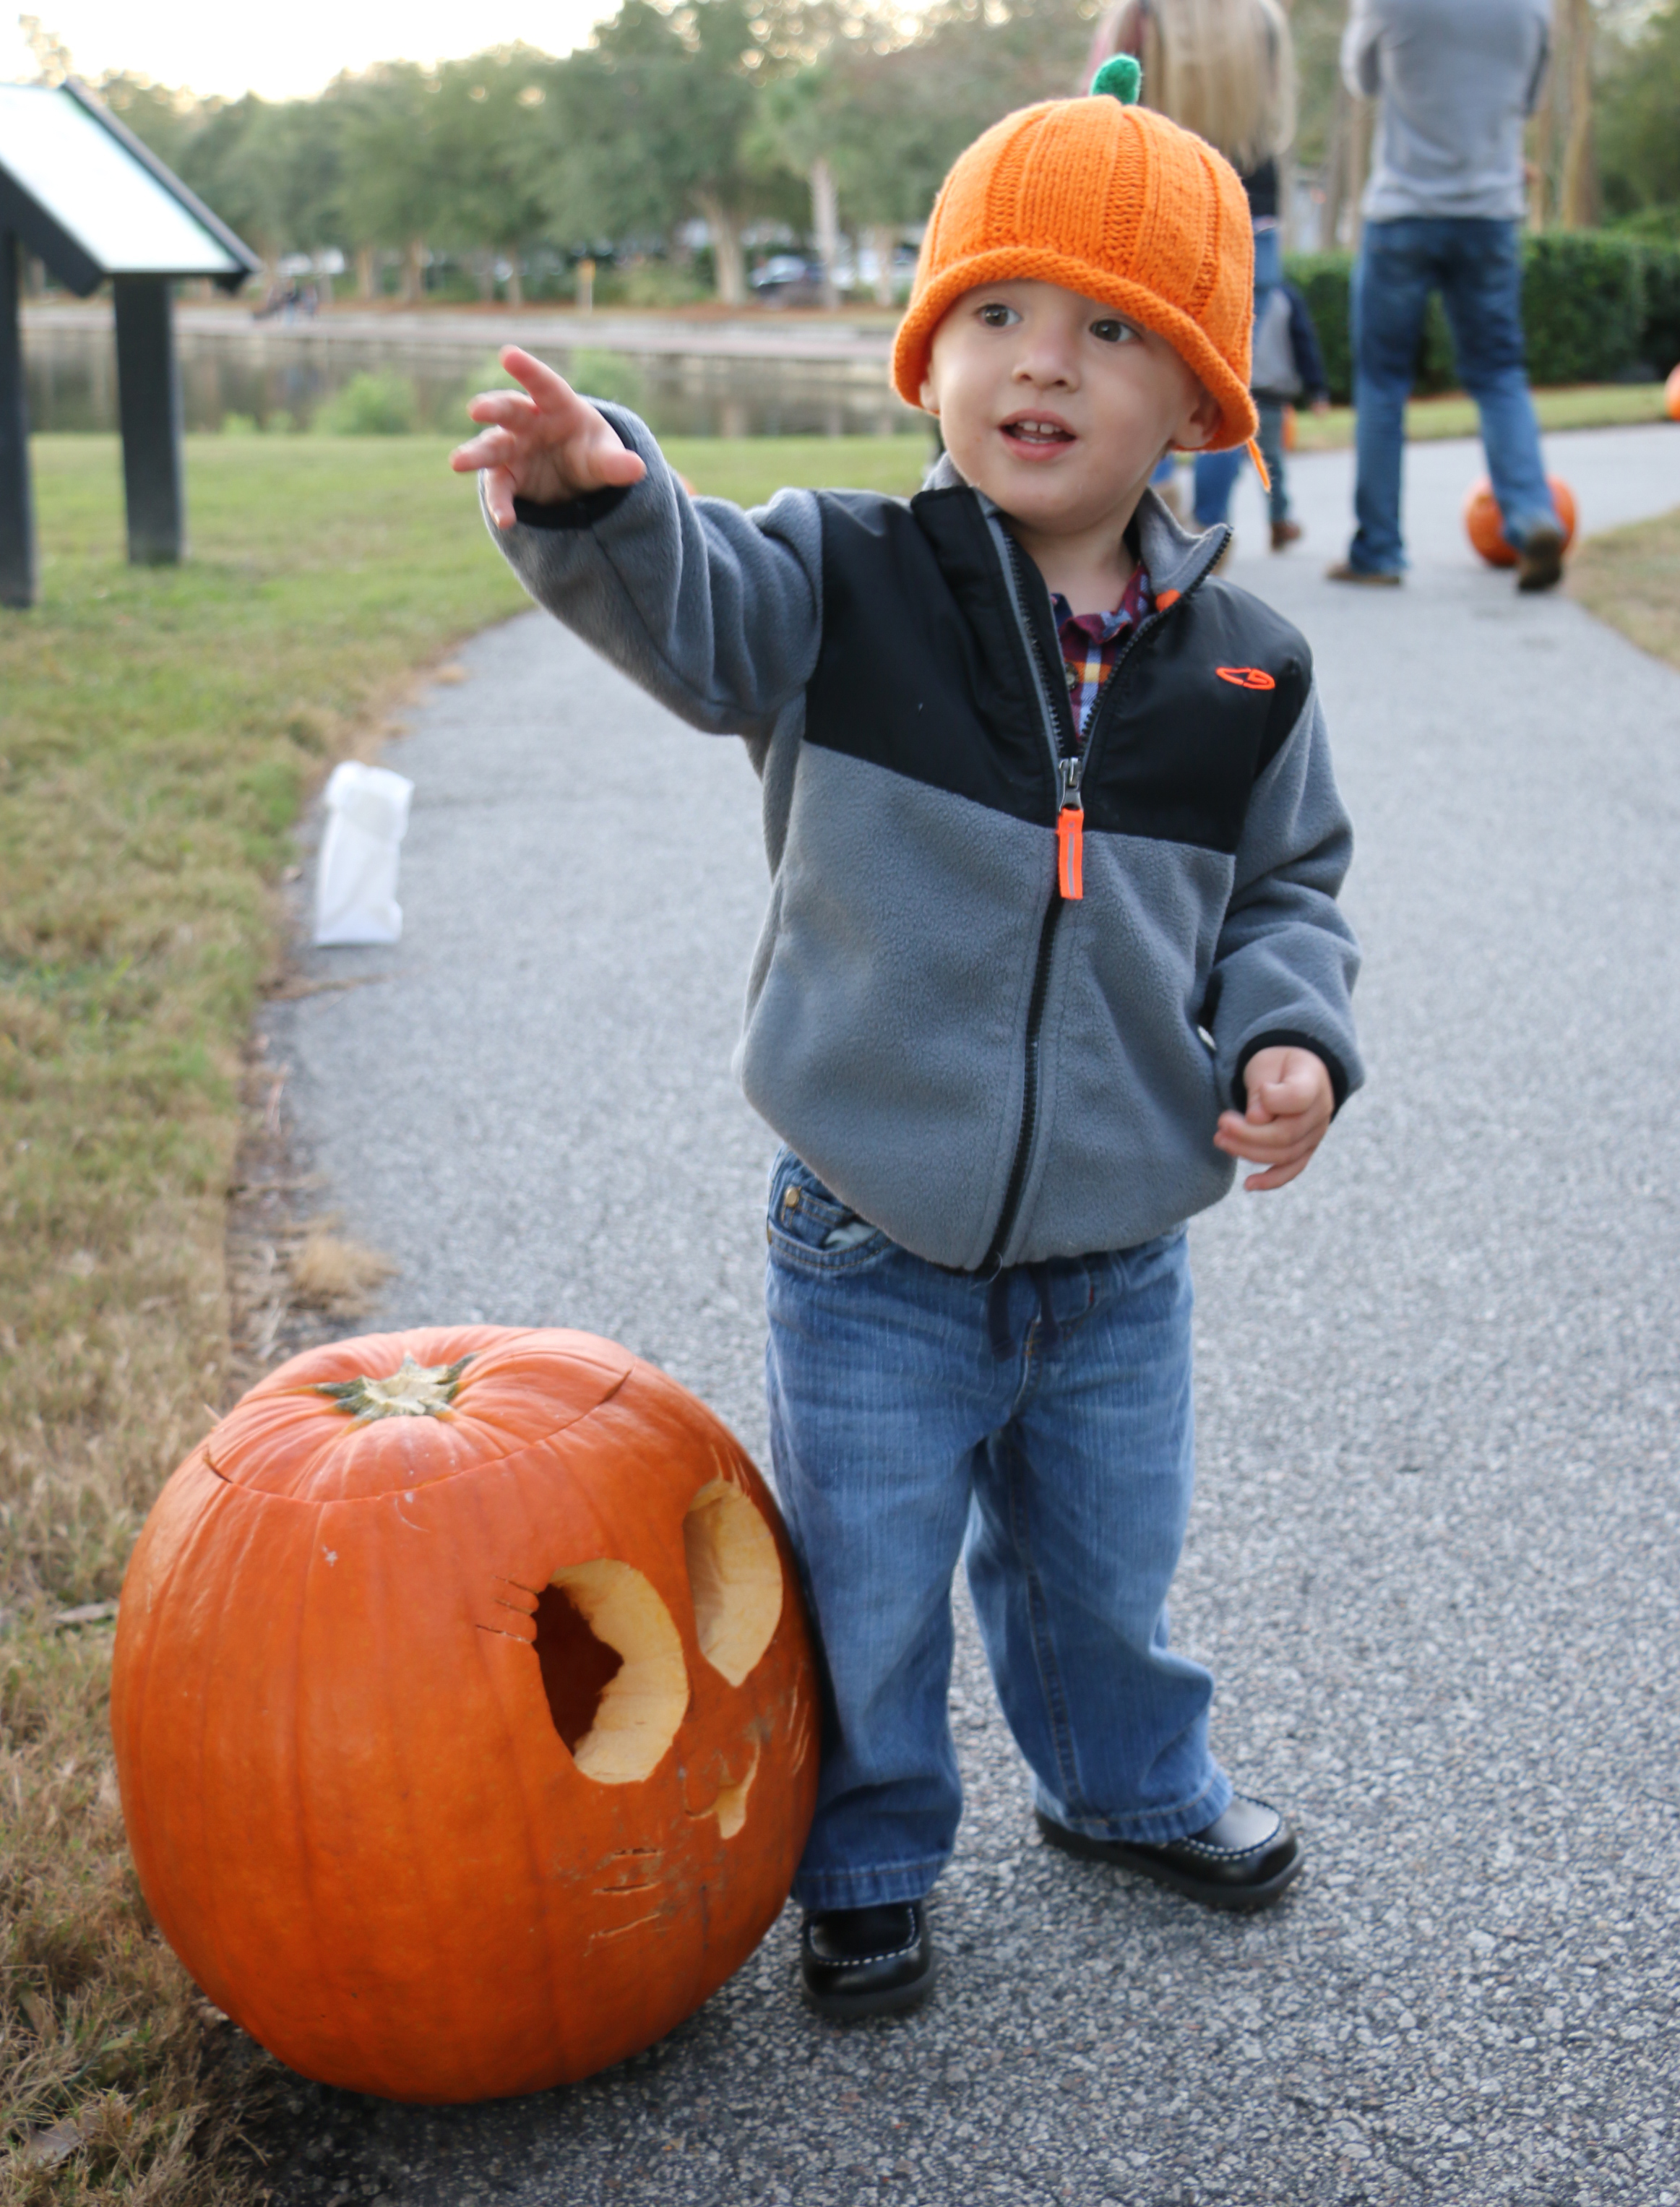 A cute lil' pumpkin! Theodore poses next to one of the many jack-o-lanterns along the path at Smythe Park.